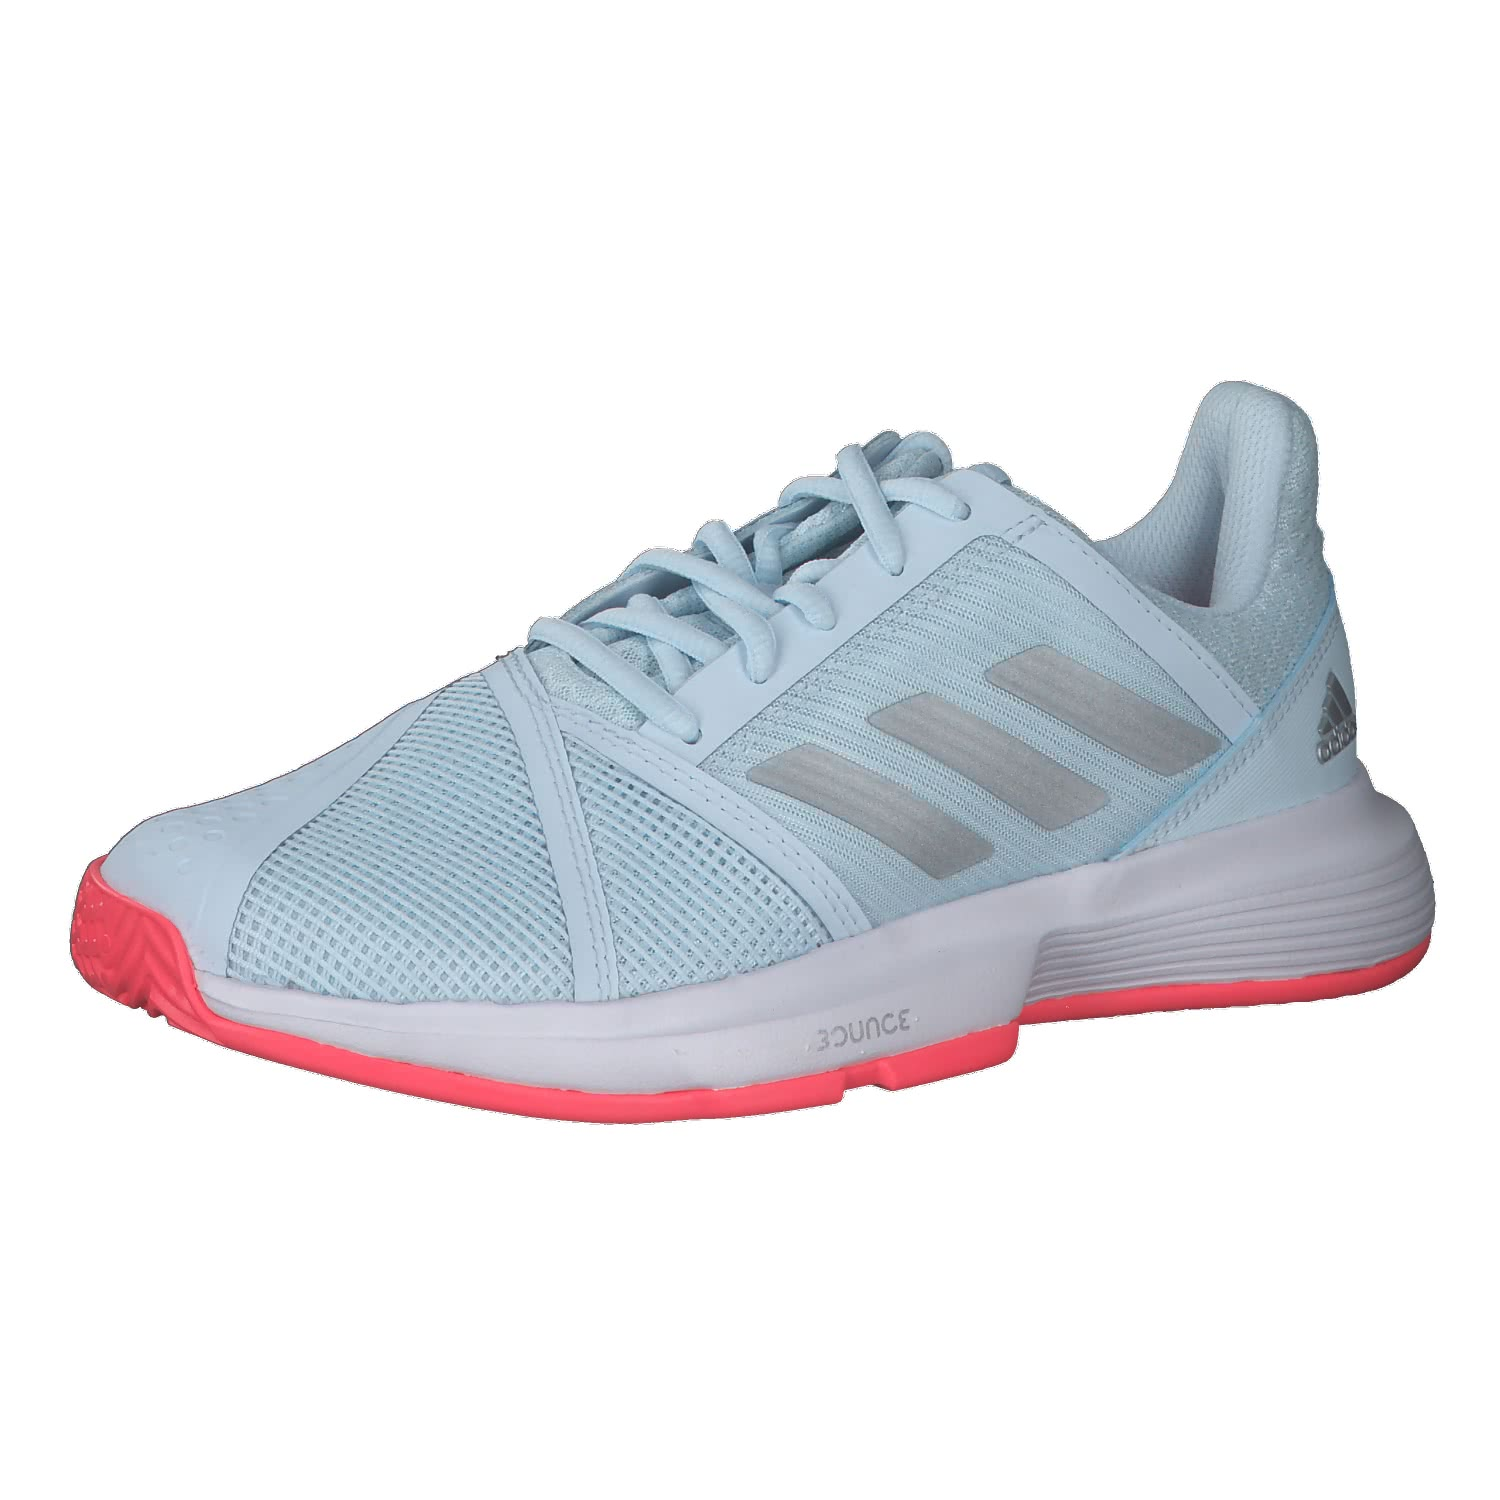 adidas Damen Tennisschuhe CourtJam Bounce | cortexpower.de